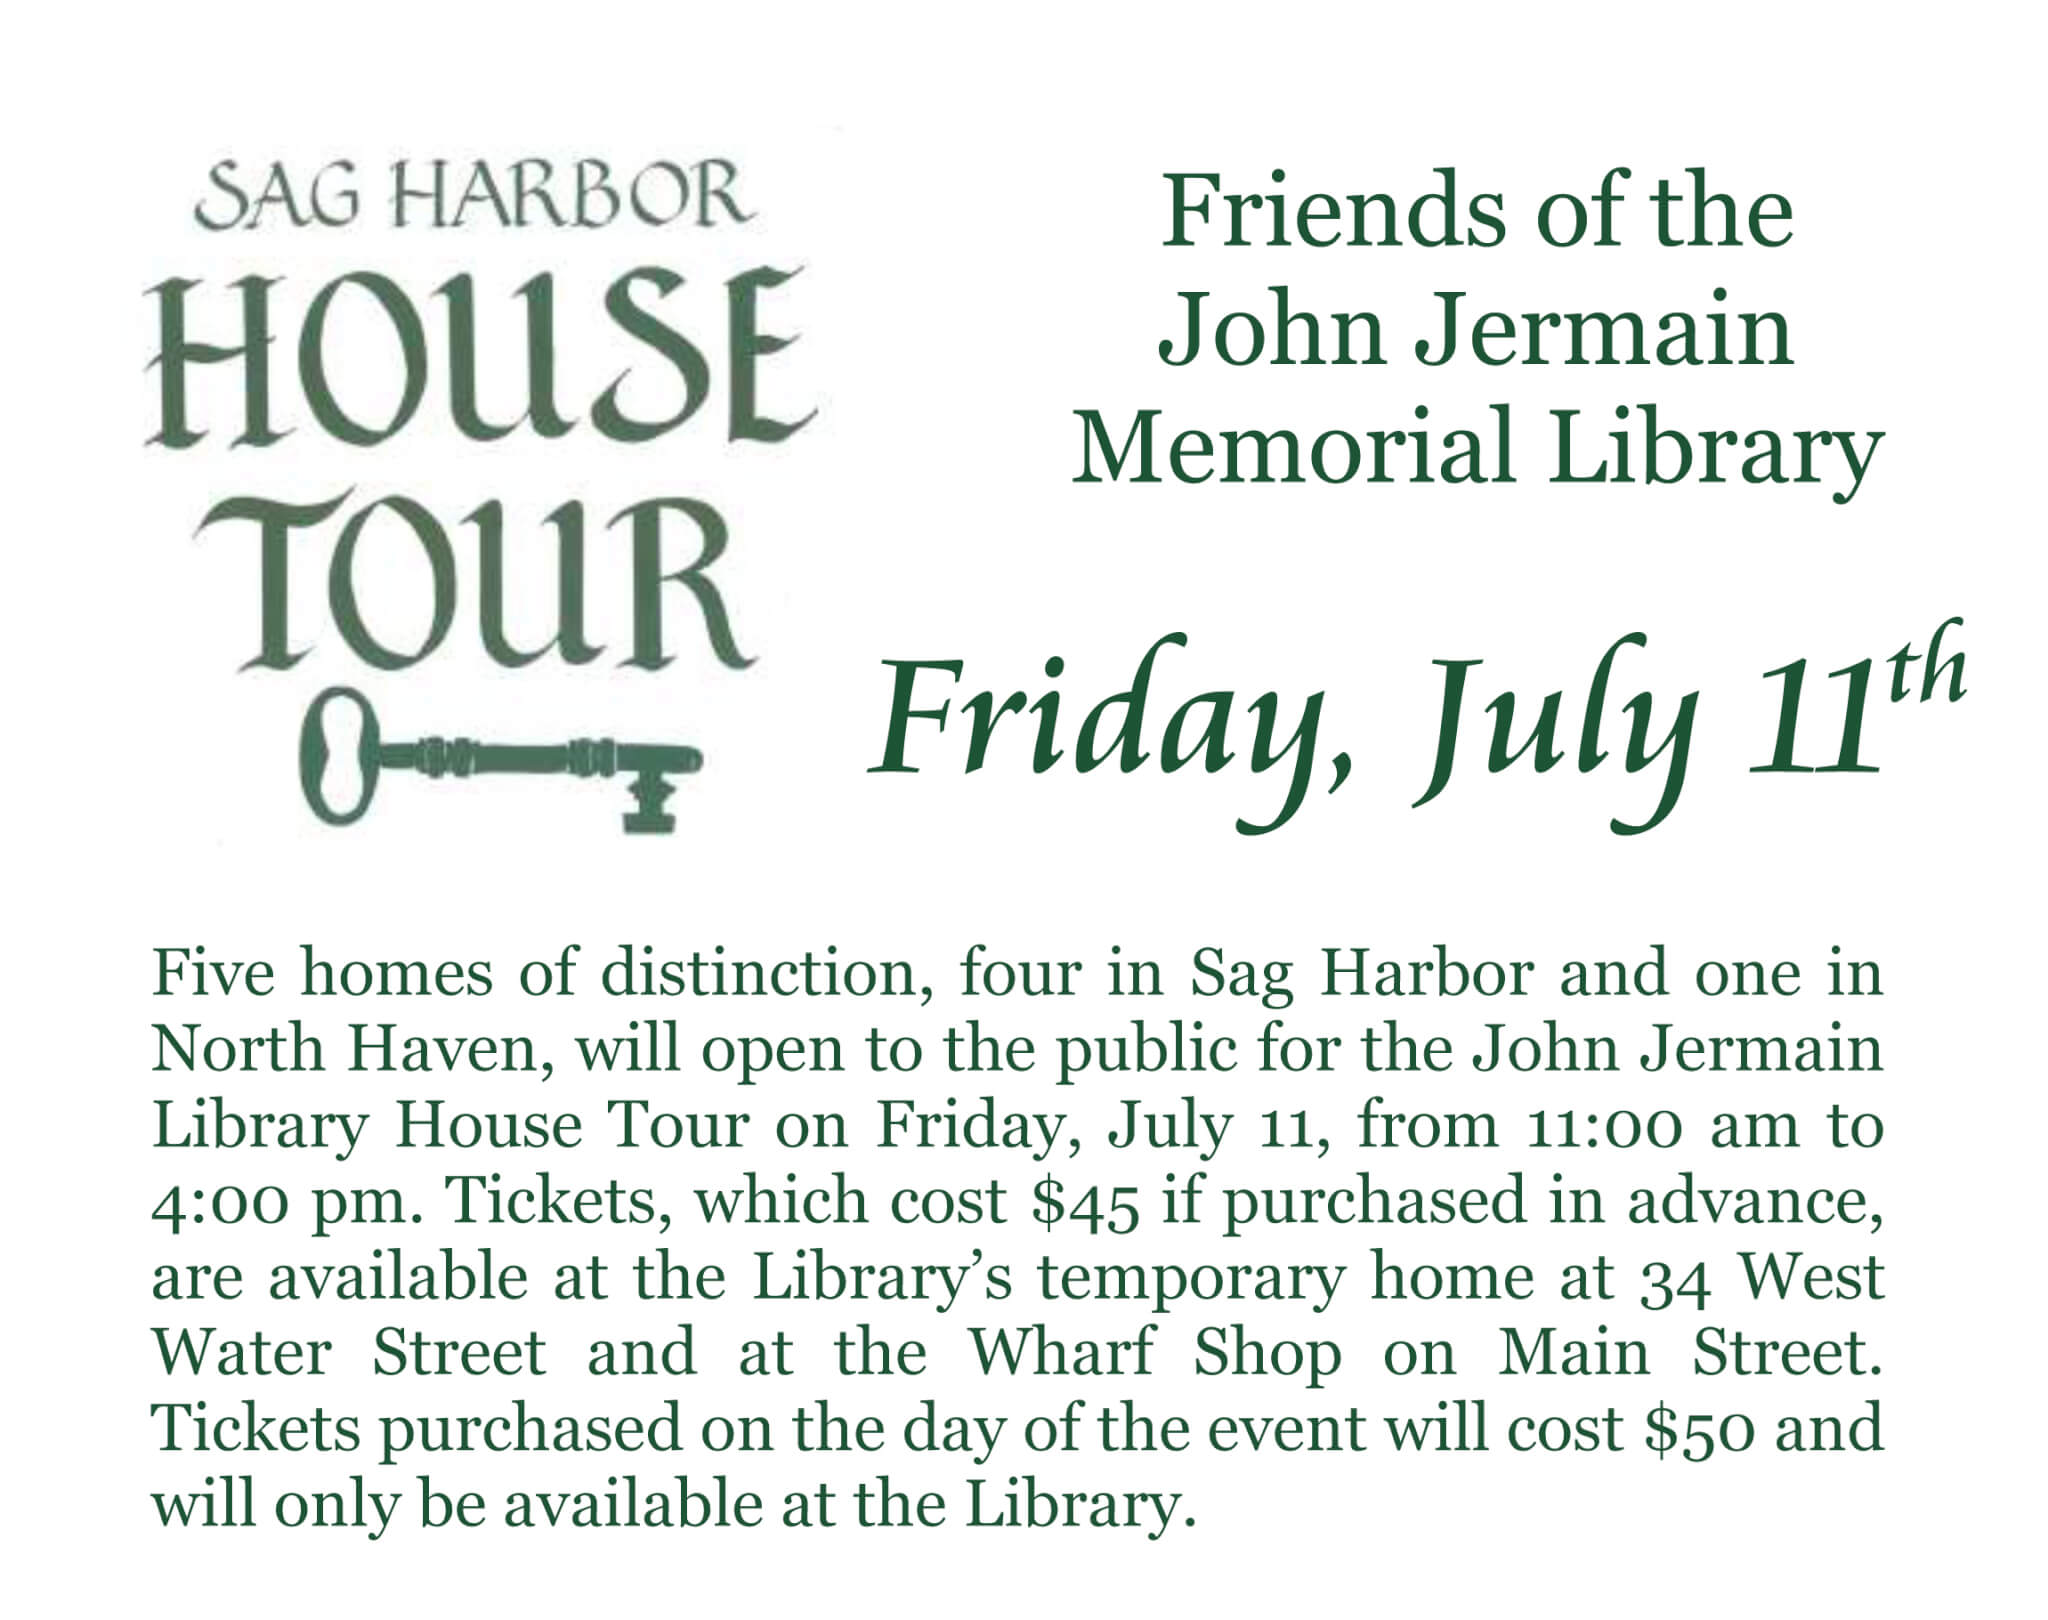 Sag Harbor House Tour, Firday July 11, 11:00 am - 4:00 pm